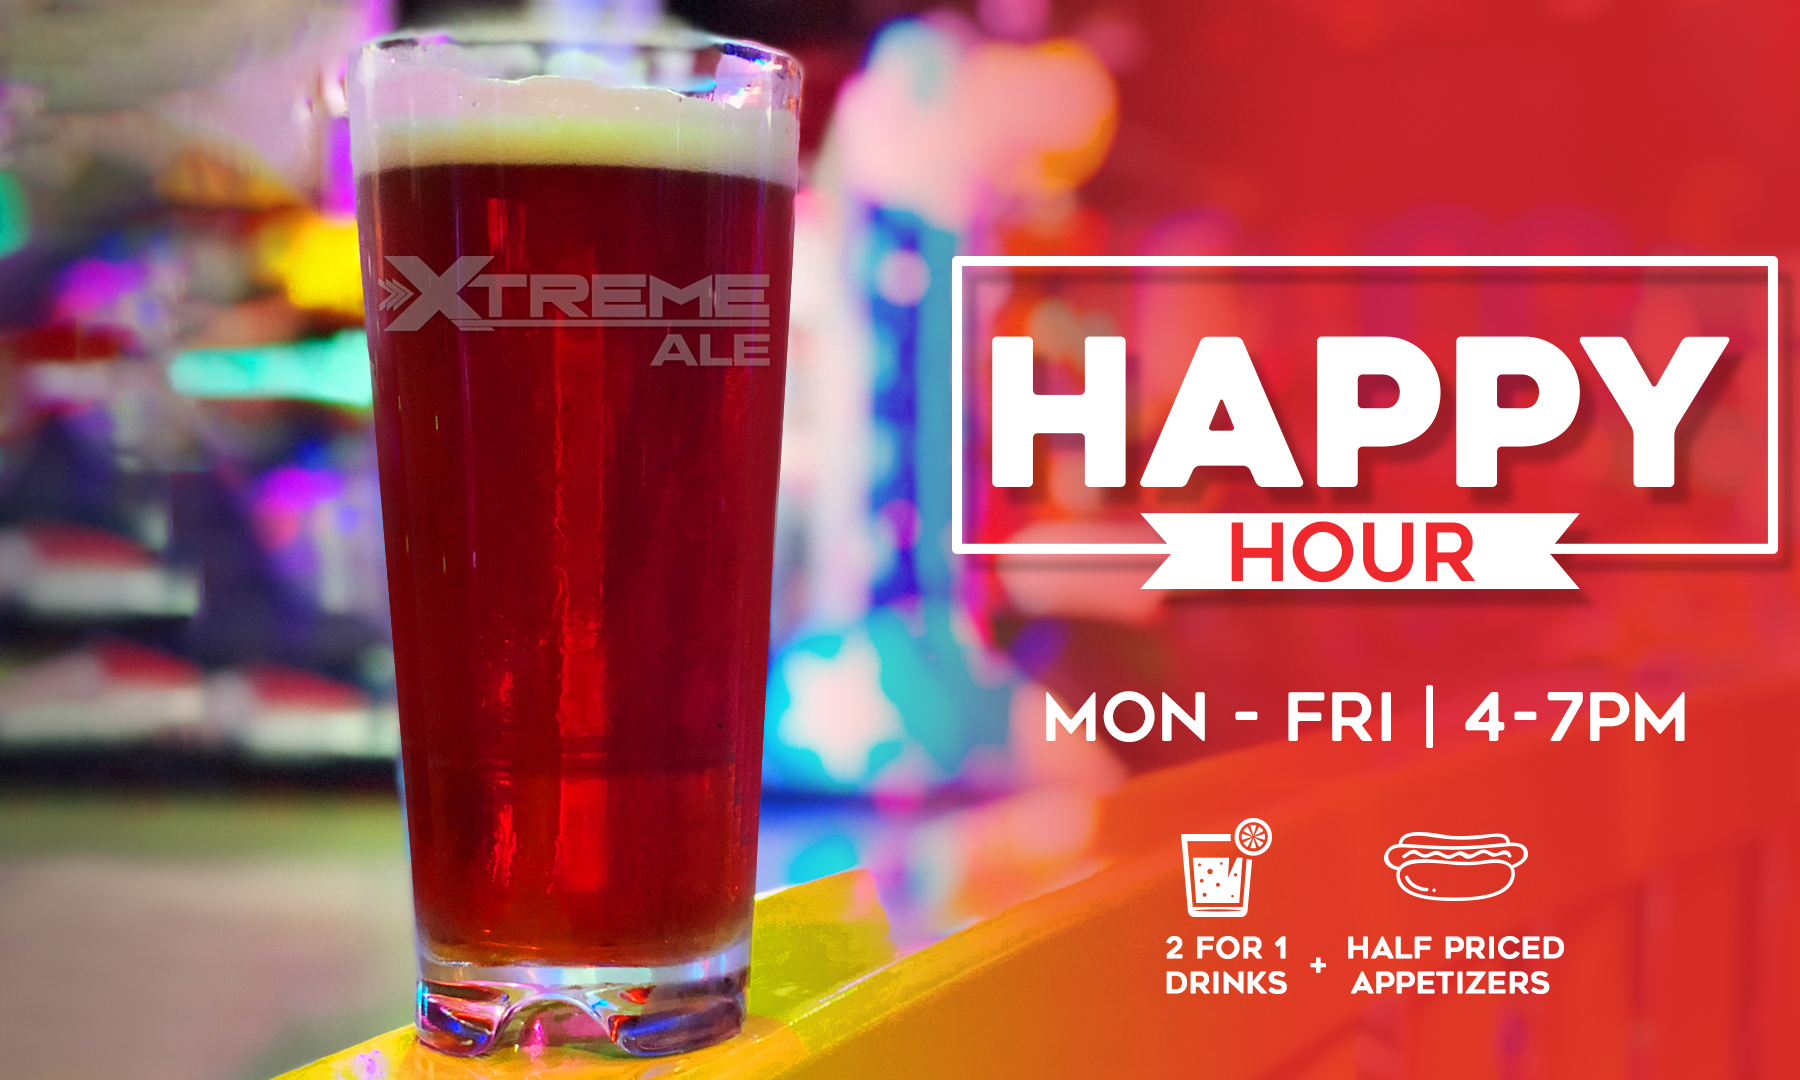 happy hour Mon-Fri 4pm-7pm